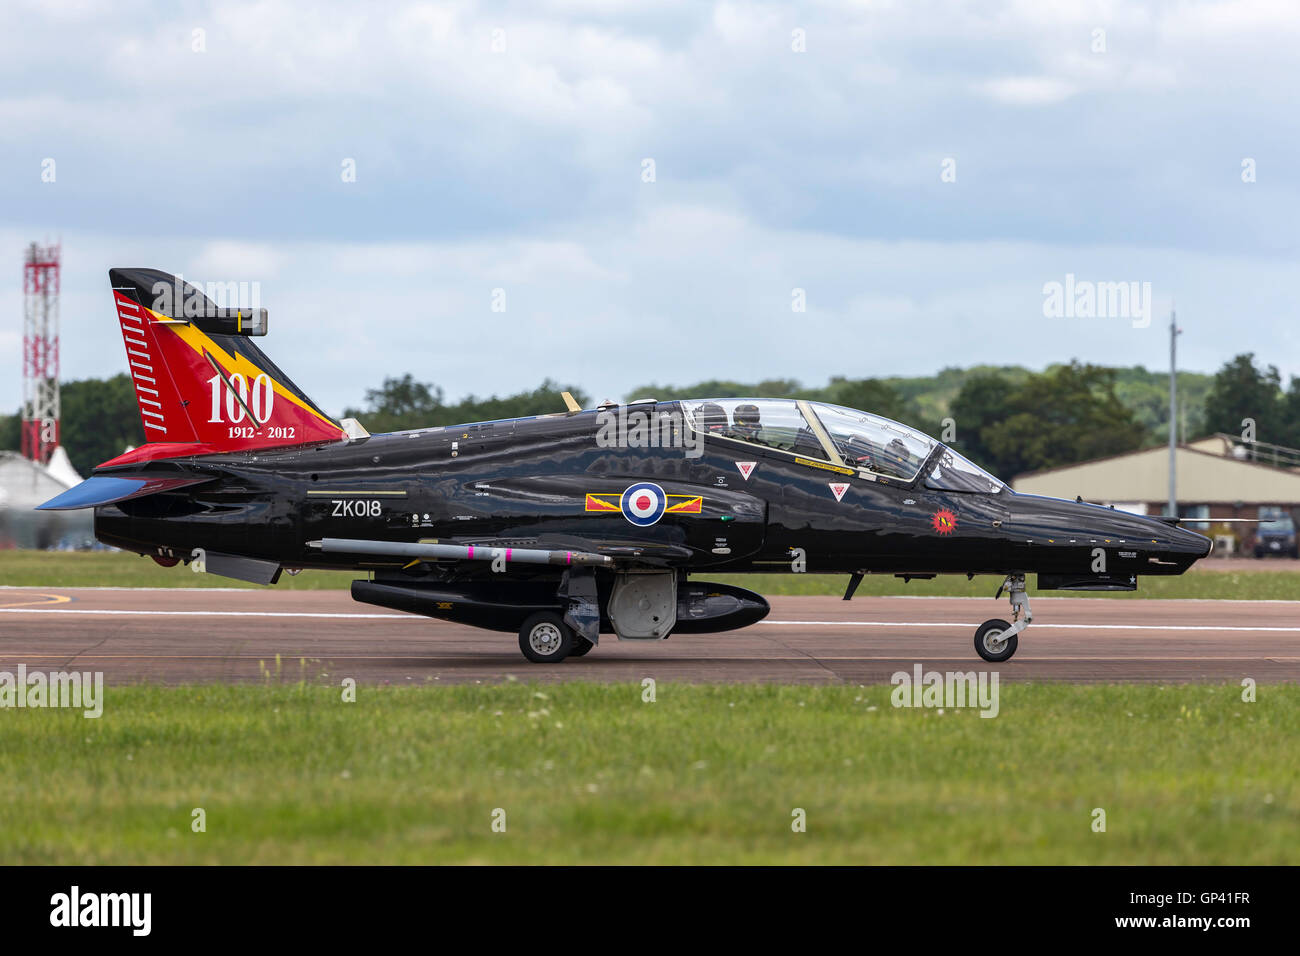 Royal Air Force Raf Bae Systems Hawk T2 Advanced Jet Trainer Zk018